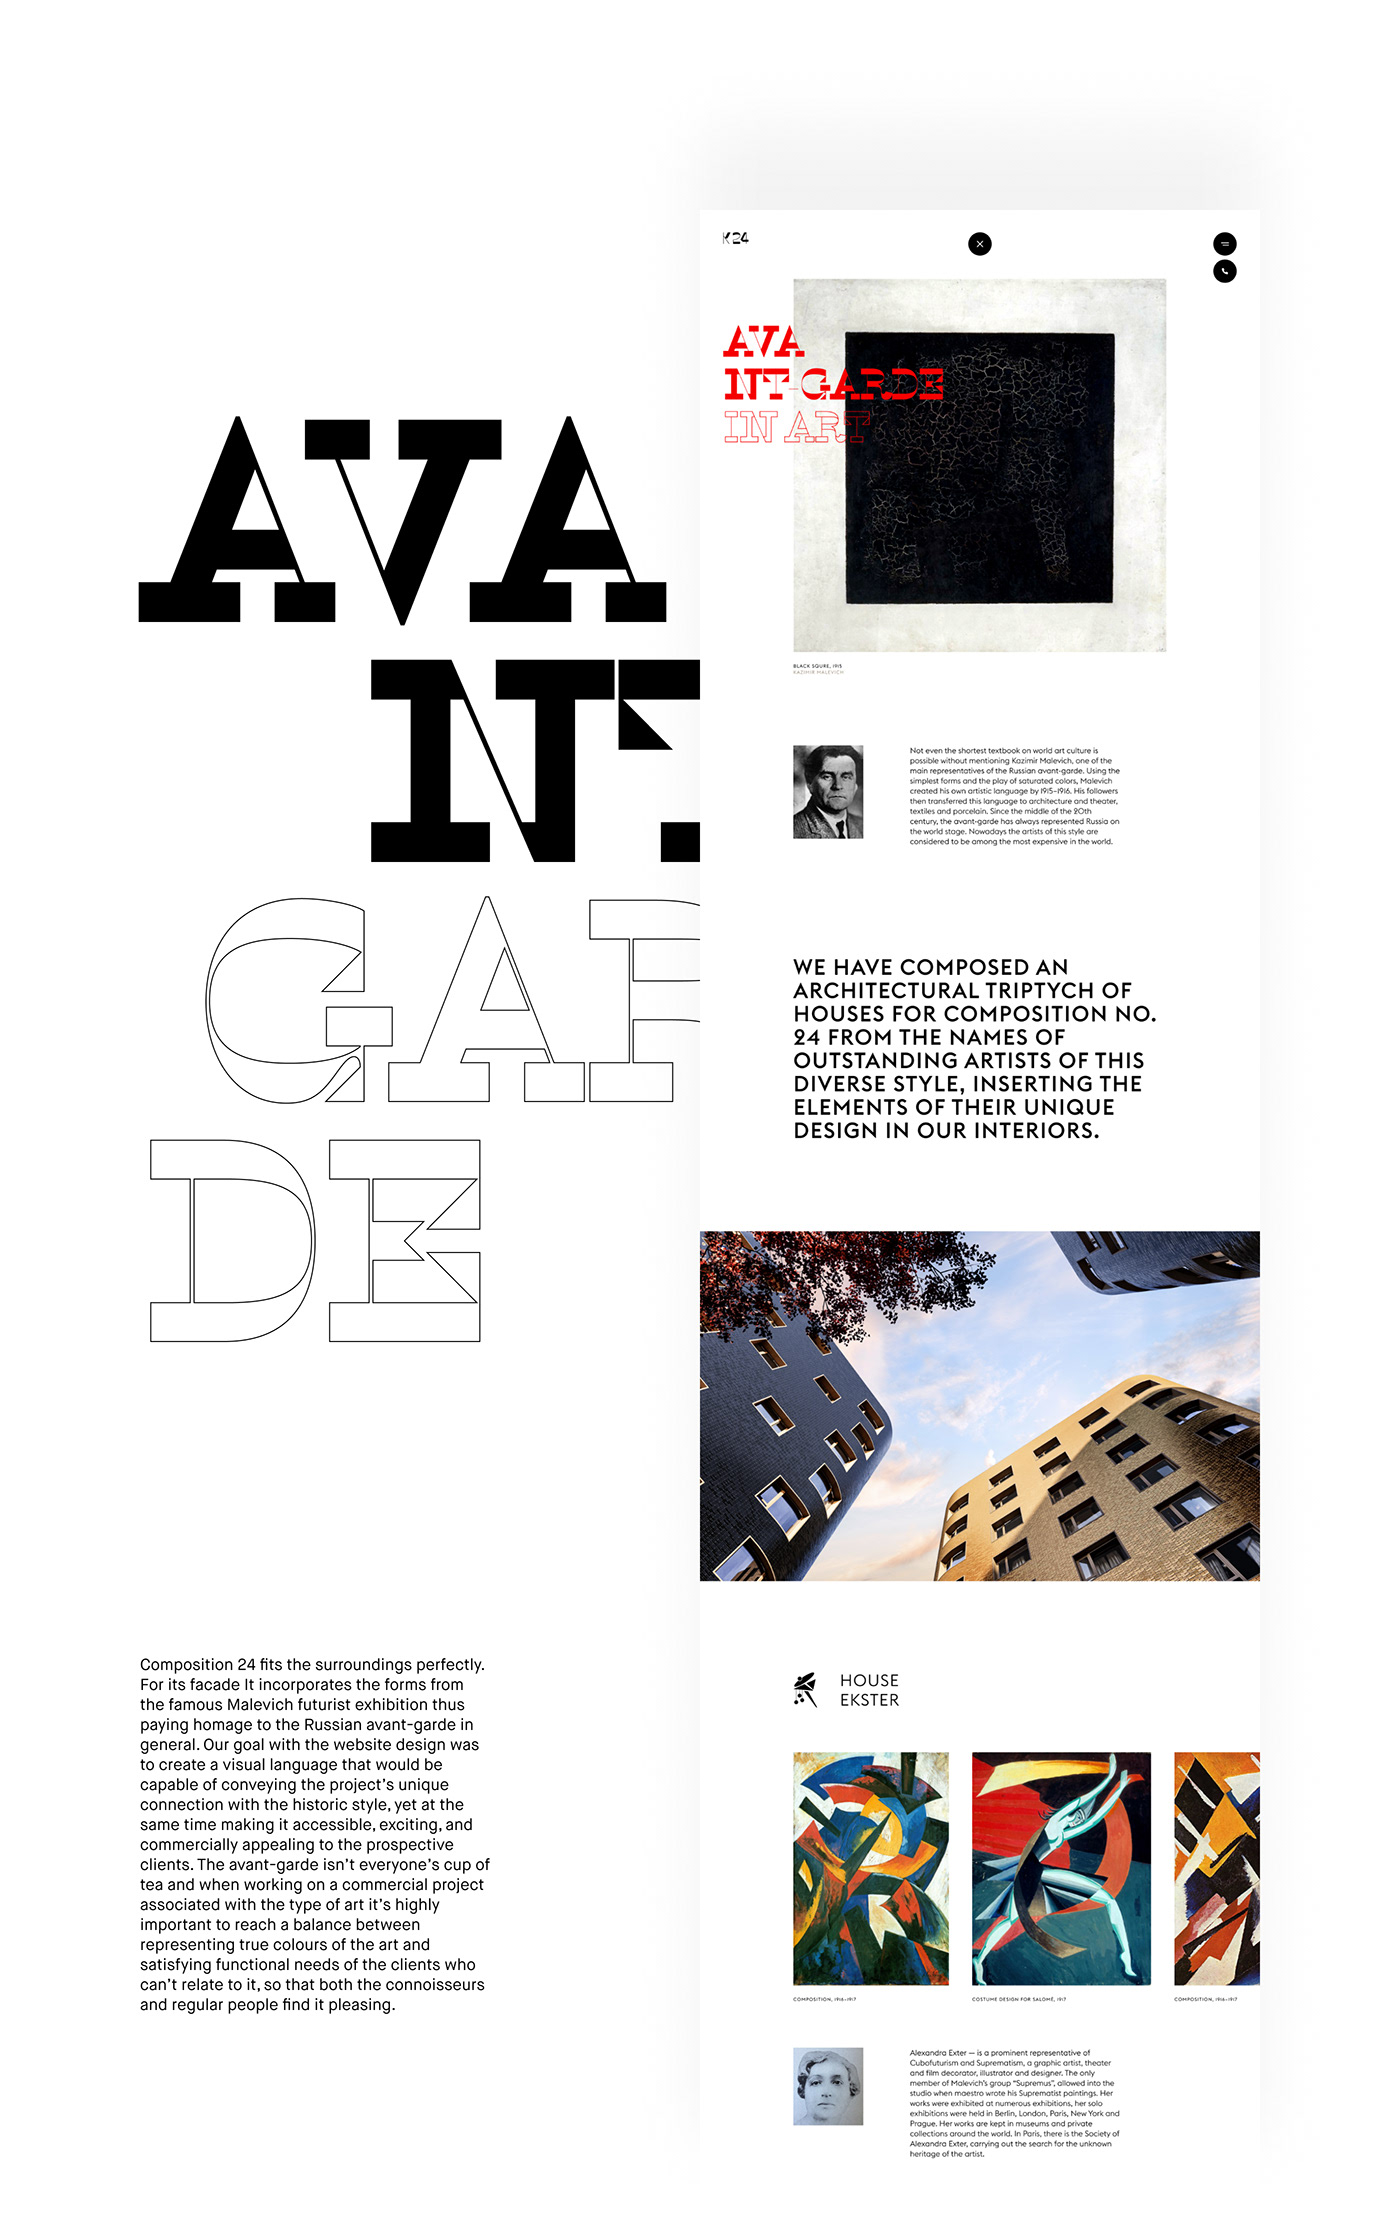 k24,composition,real estate,avantgrade,Suprematism,20th,Residence,Moscow